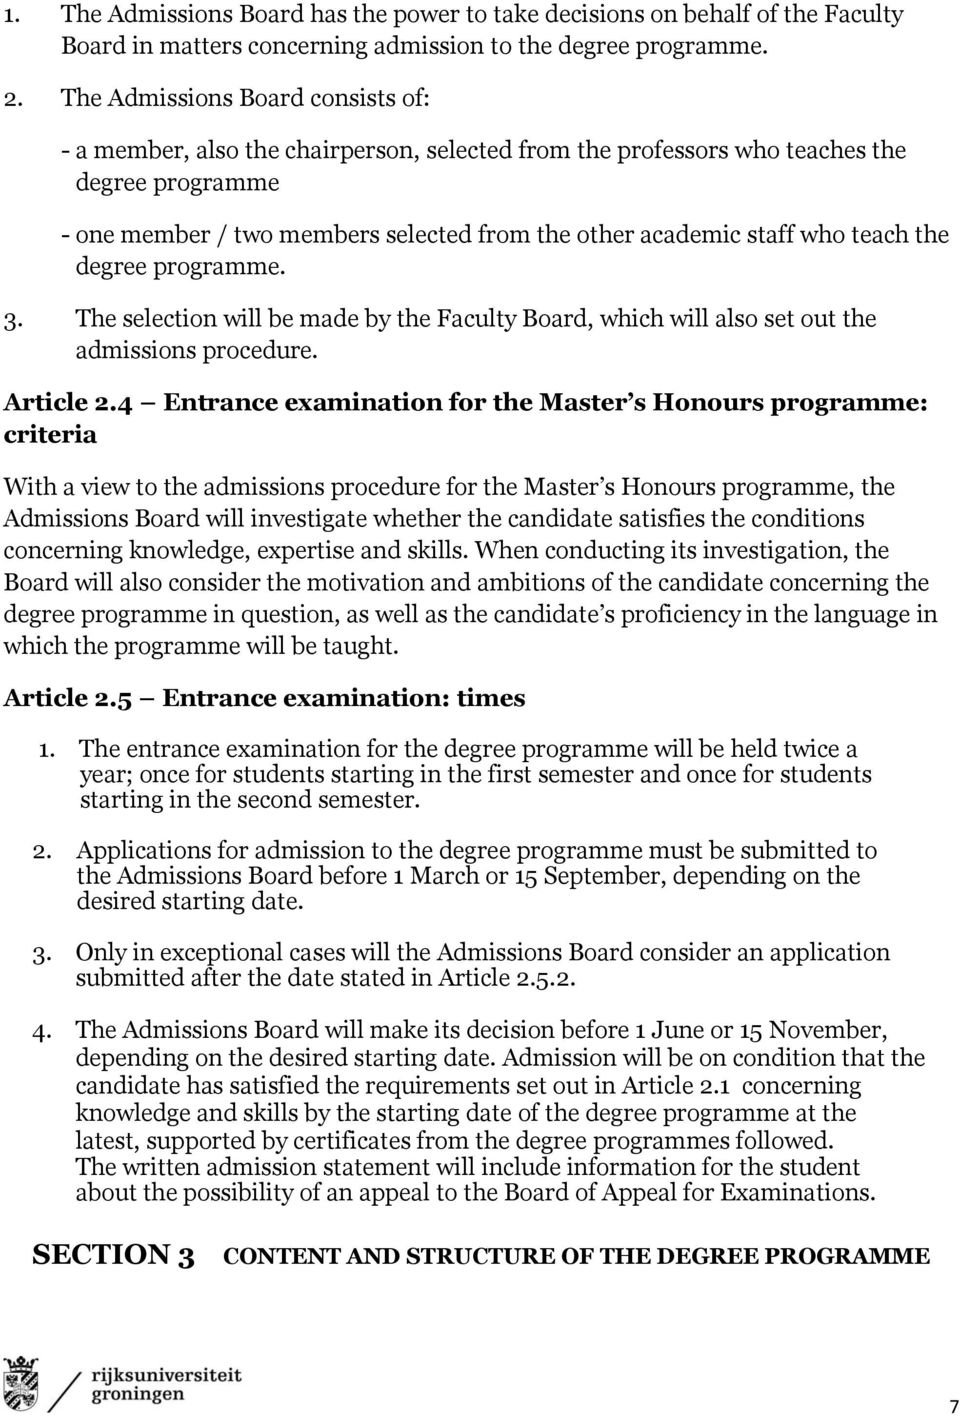 teach the degree programme. 3. The selection will be made by the Faculty Board, which will also set out the admissions procedure. Article 2.